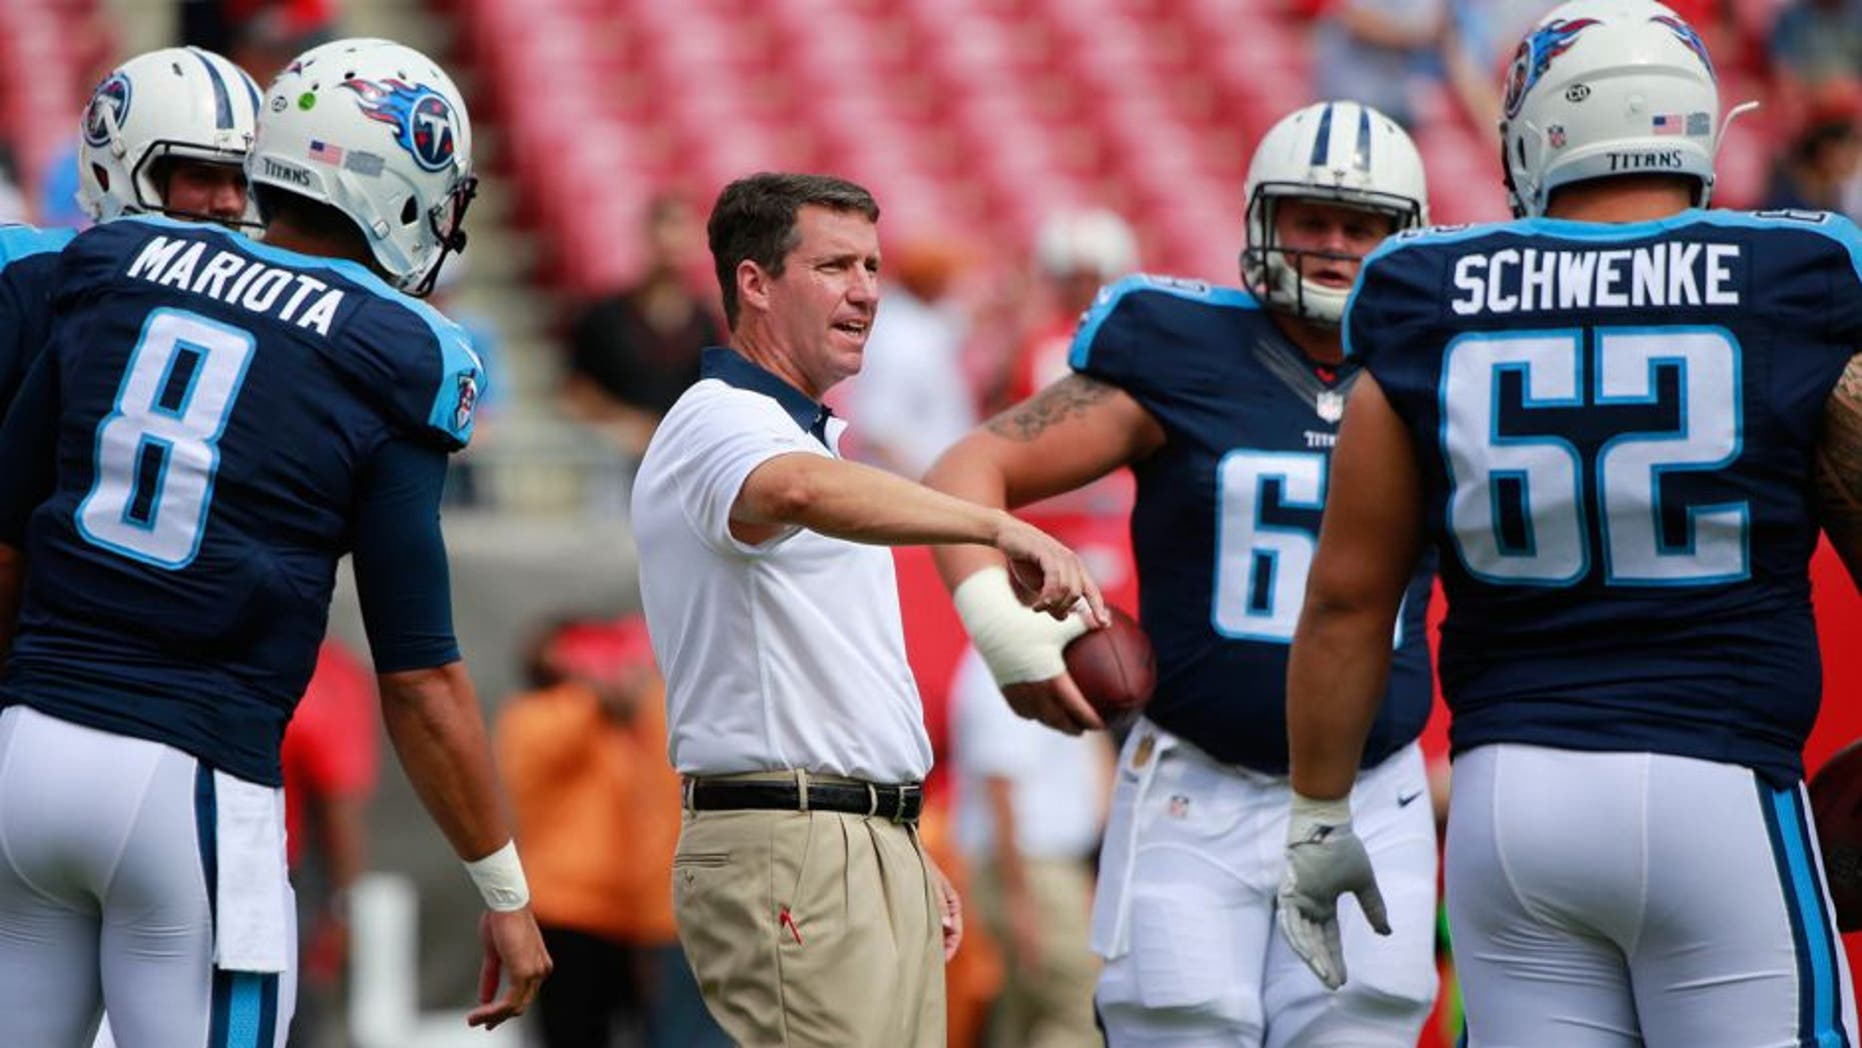 Sep 13, 2015; Tampa, FL, USA; Tennessee Titans quarterback coach John McNulty talks with center Brian Schwenke (62), quarterback Zach Mettenberger (7) and quarterback Marcus Mariota (8) prior to the game at Raymond James Stadium. Mandatory Credit: Kim Klement-USA TODAY Sports